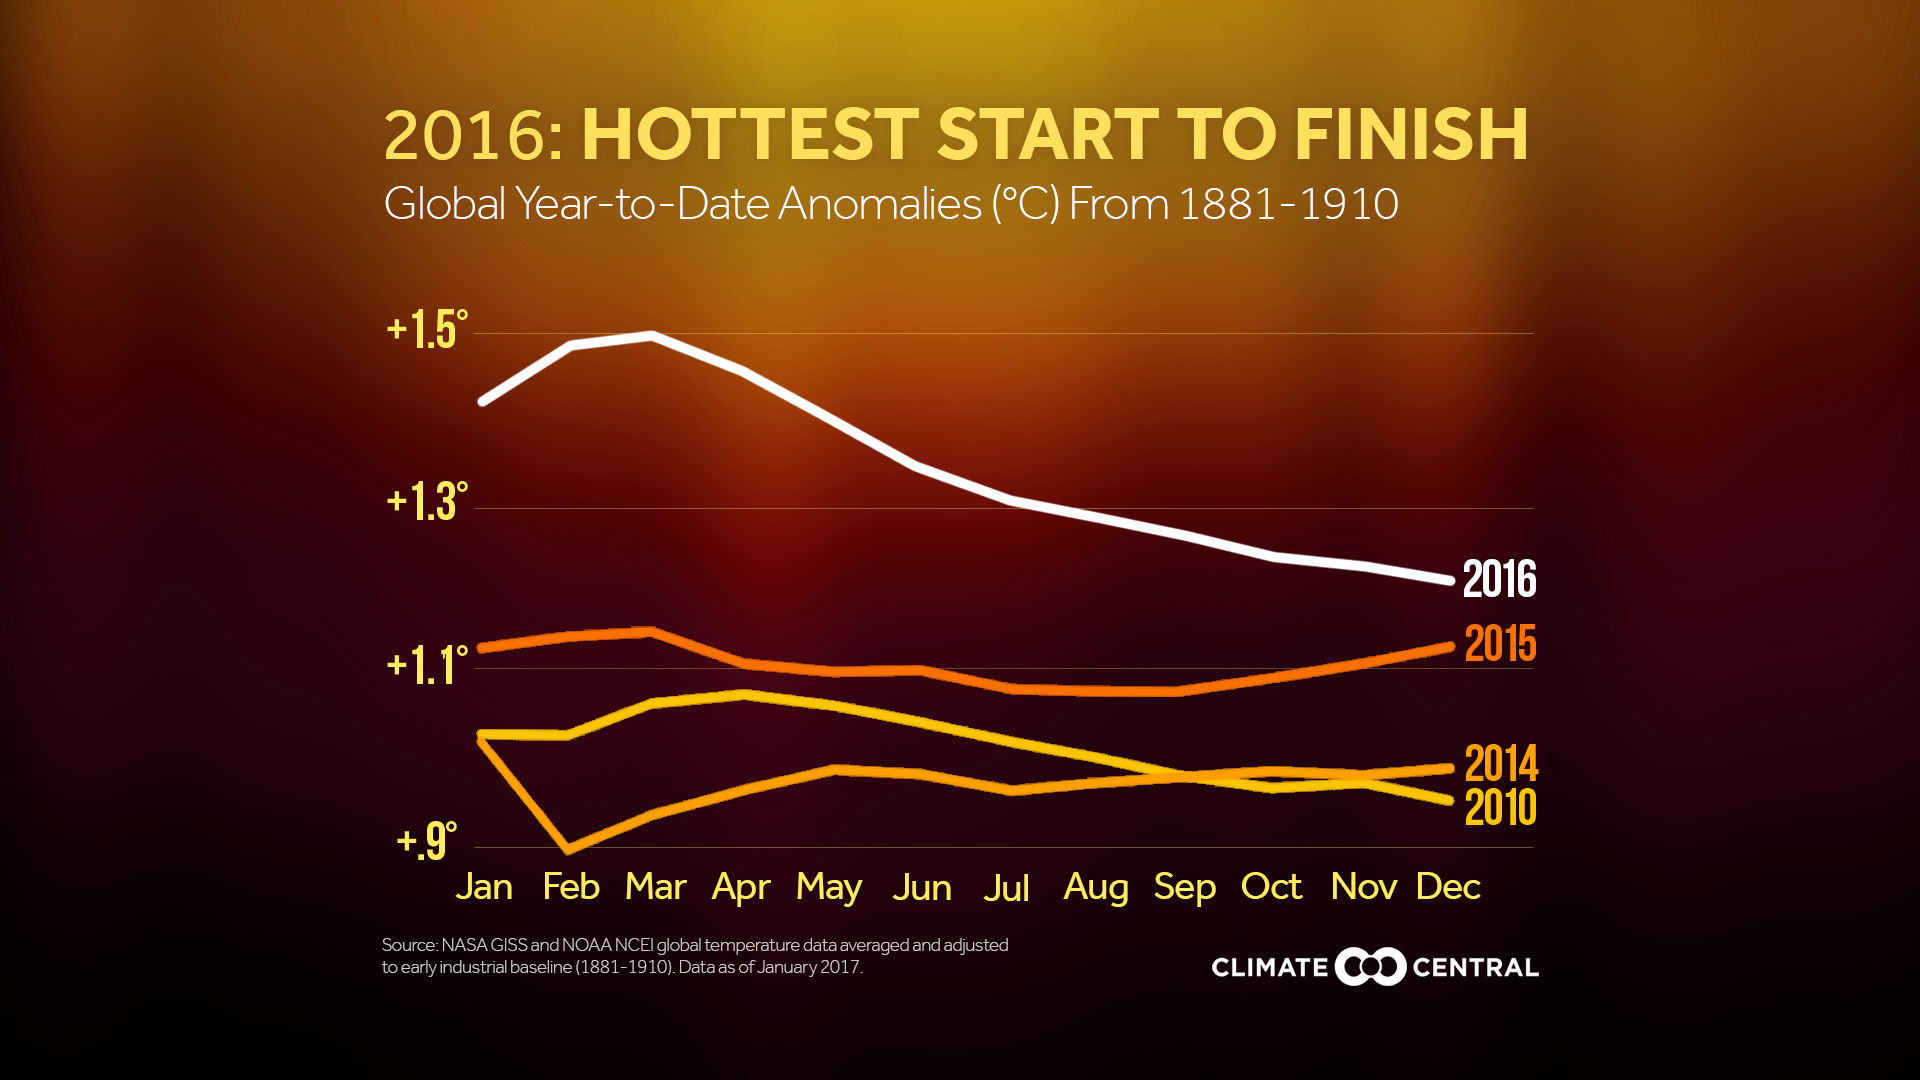 2016 was the hottest year on record climate central